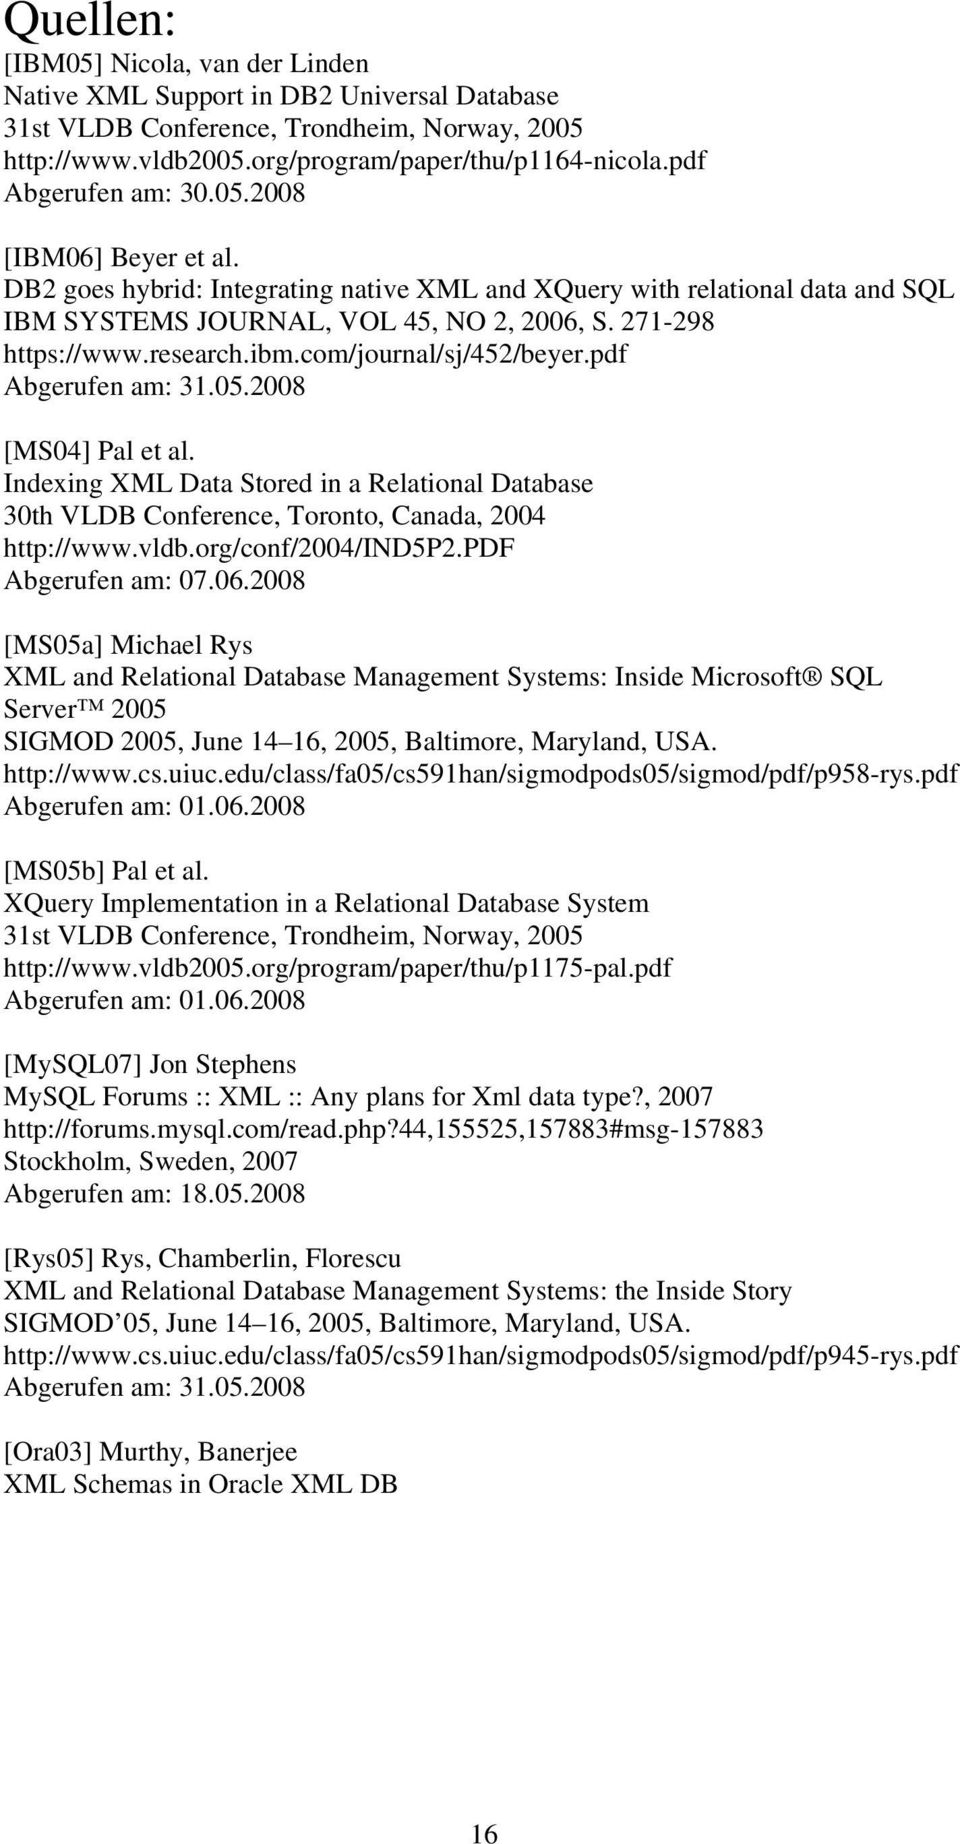 research.ibm.com/journal/sj/452/beyer.pdf Abgerufen am: 31.05.2008 [MS04] Pal et al. Indexing XML Data Stored in a Relational Database 30th VLDB Conference, Toronto, Canada, 2004 http://www.vldb.